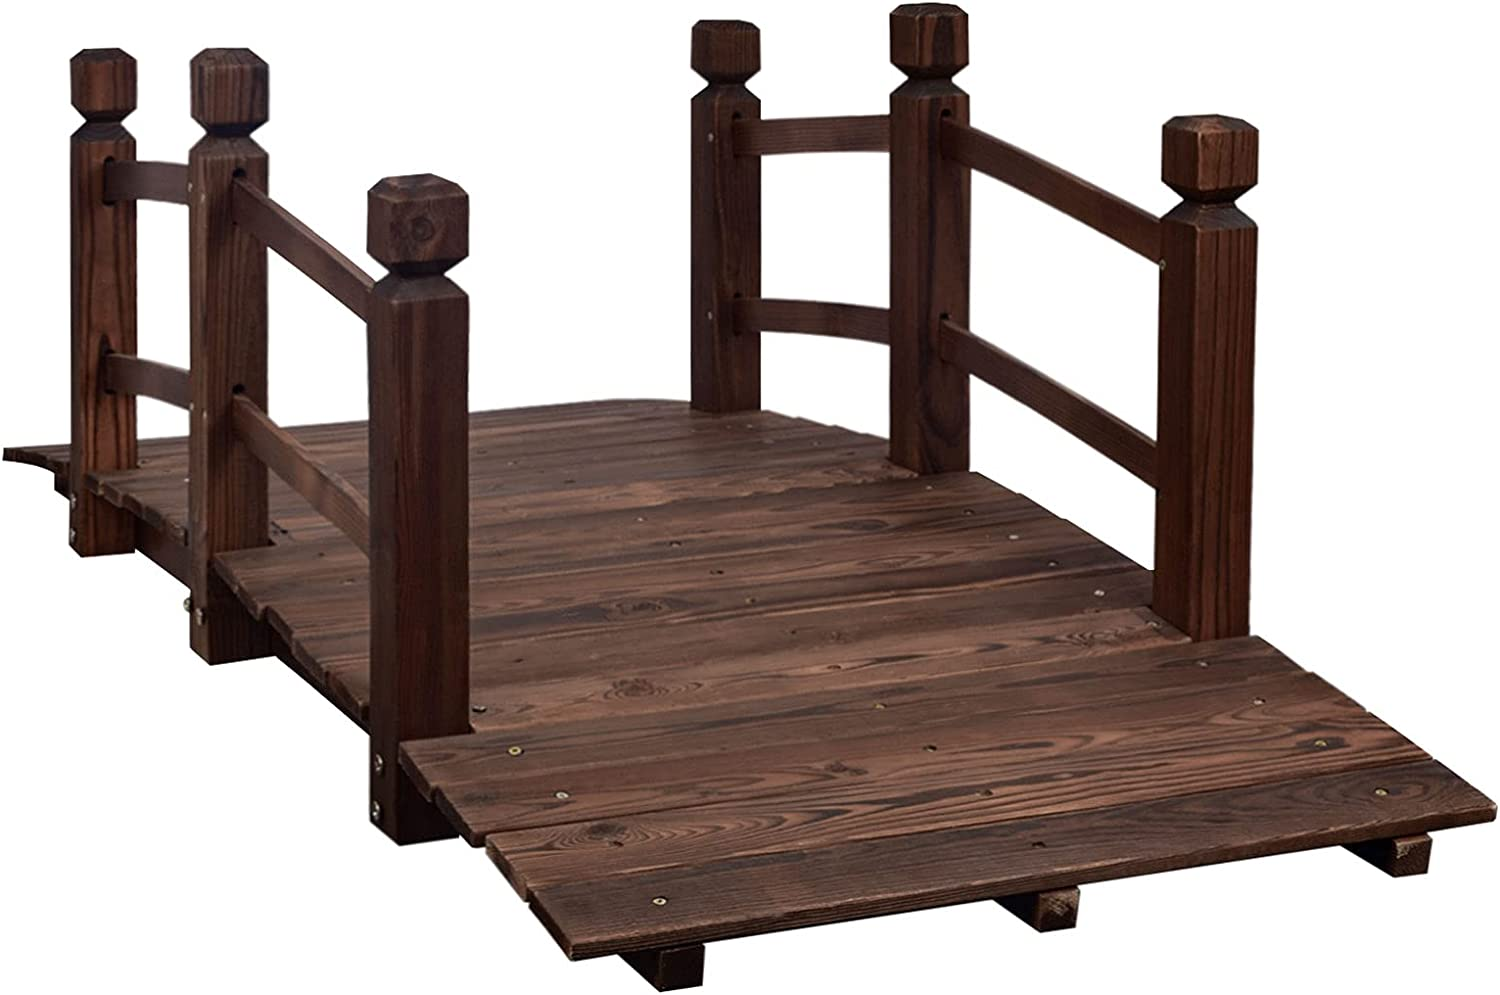 MAXXPRIME 5 ft Wooden Garden Bridge Arc Outdoor Stained Finish Footbridge with Safety Railings for Backyard, Decorative Pond Bridge, Stained Wood